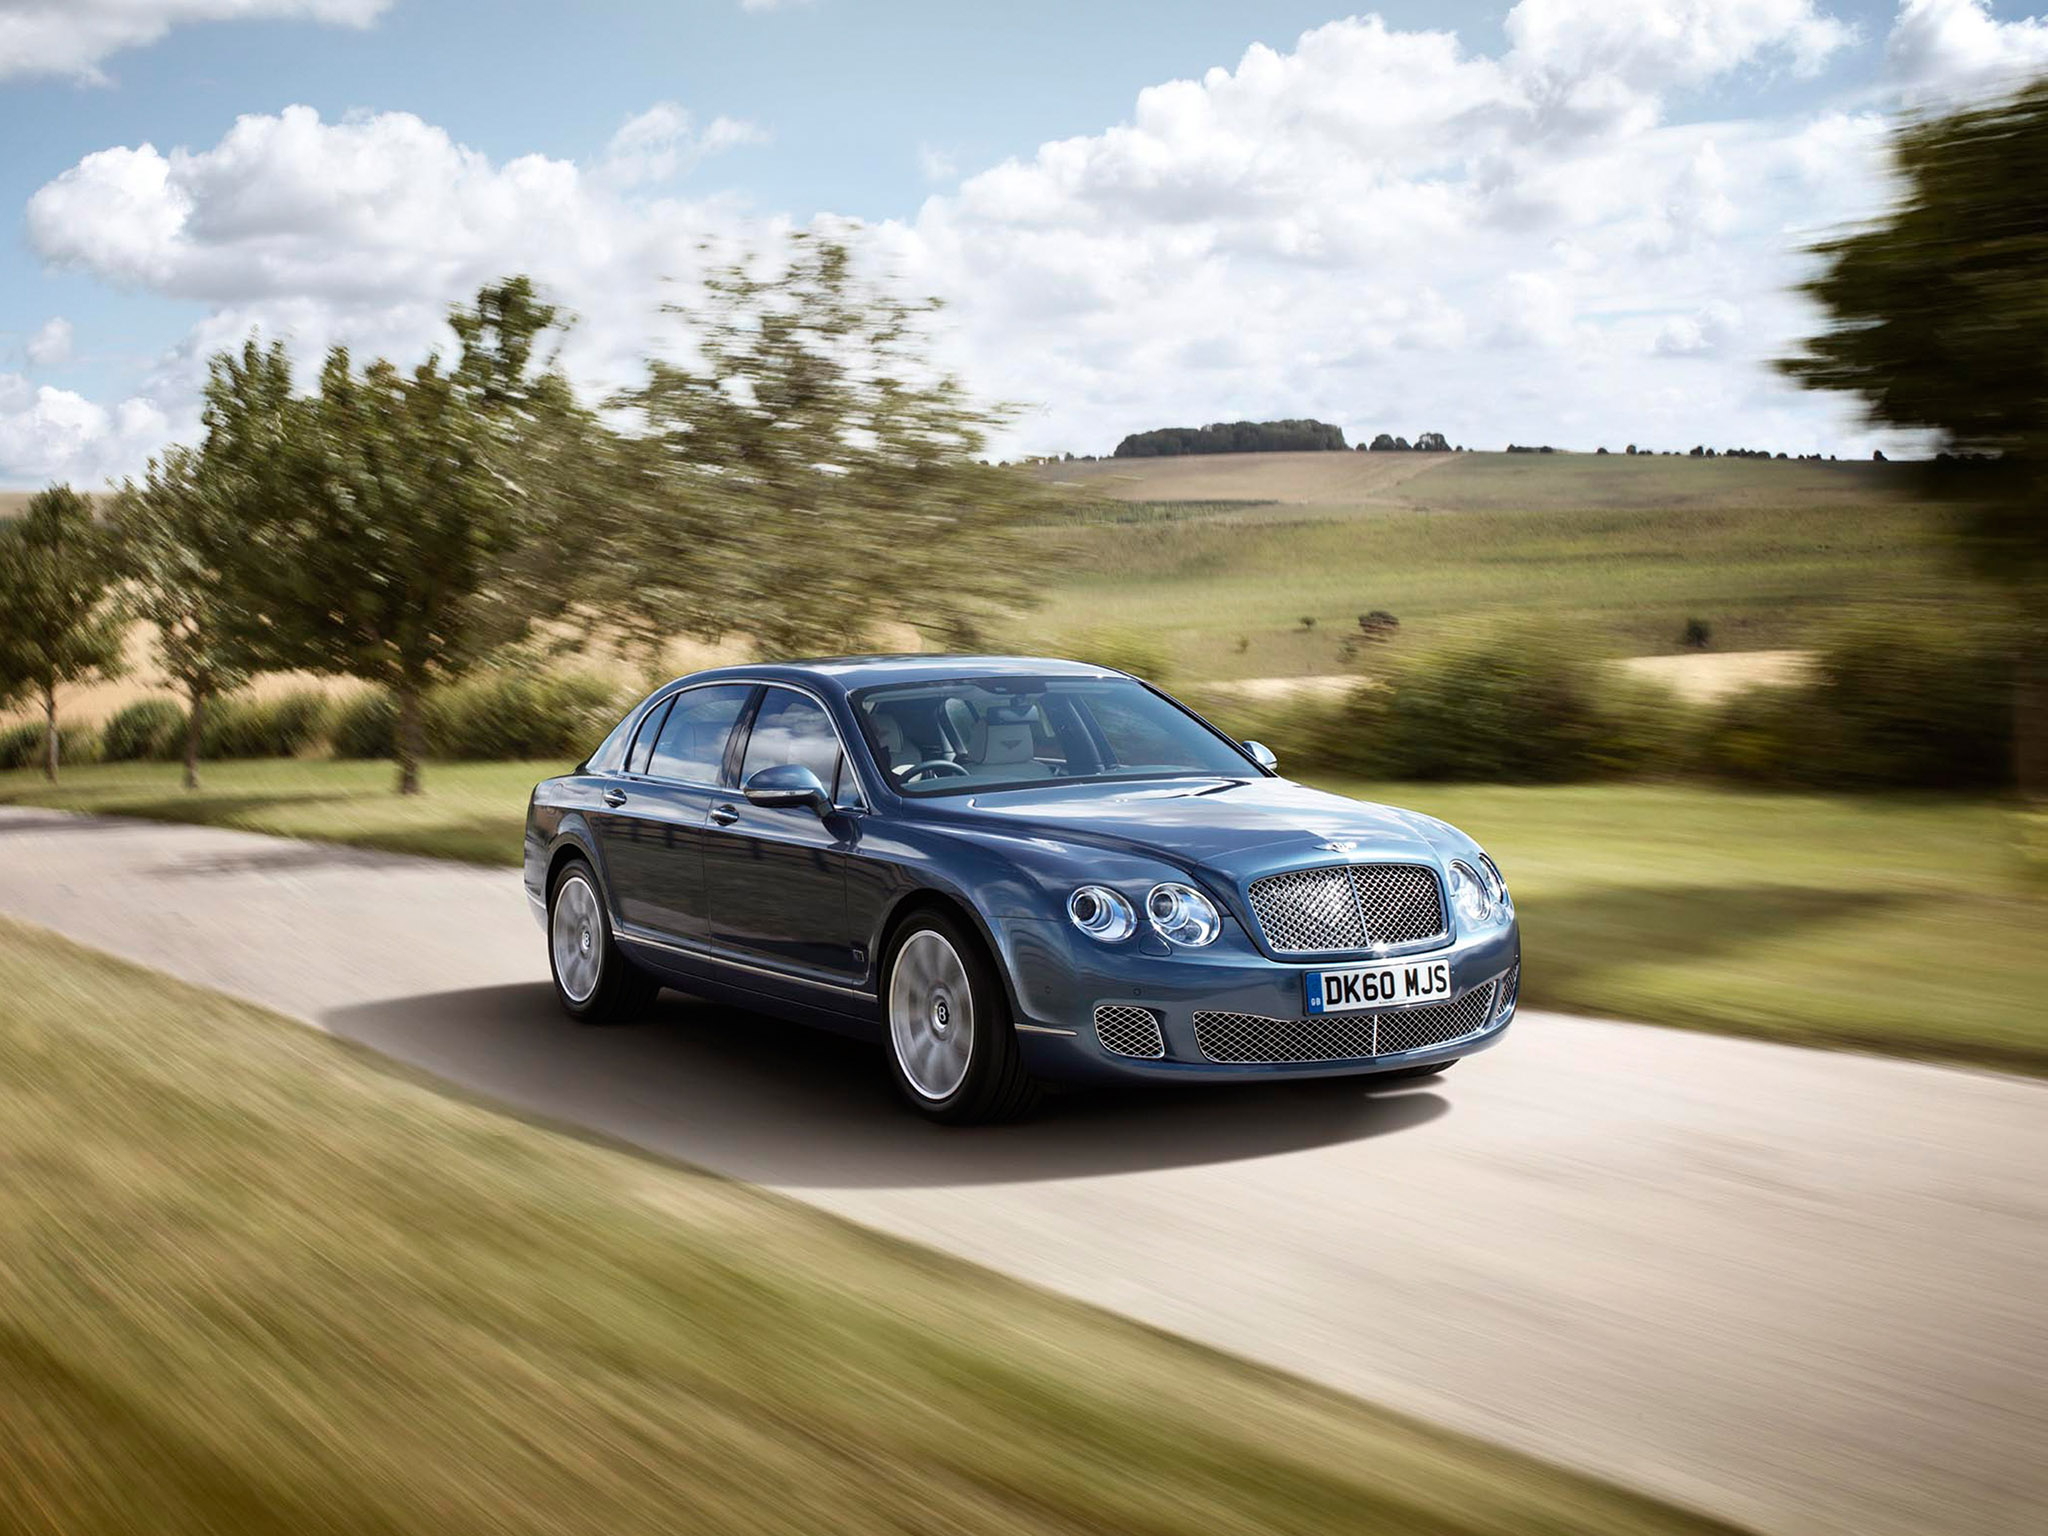 bentley continental flying spur series 51 #4